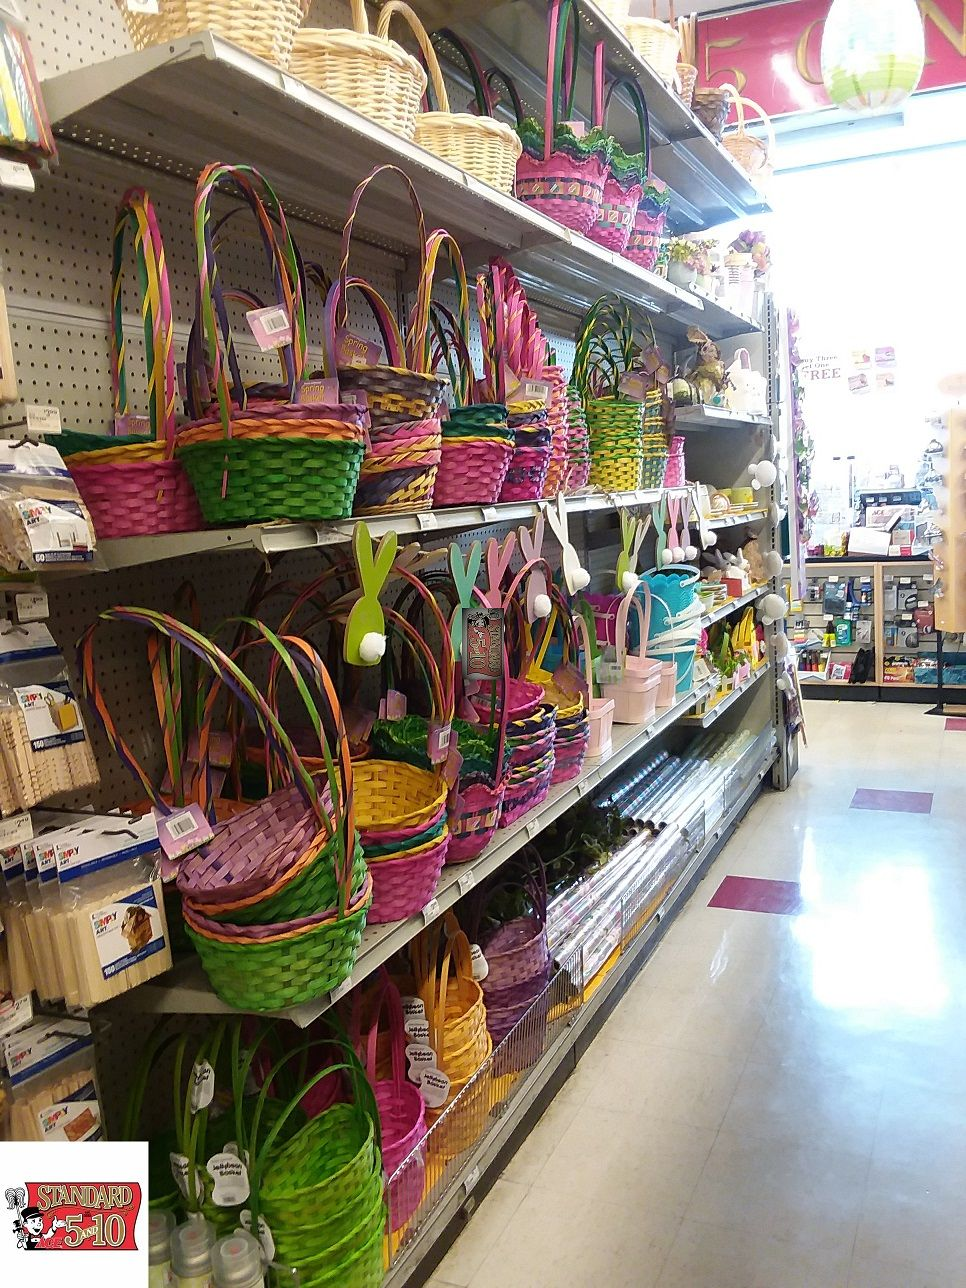 Easter baskets were a suprise but you do know that you